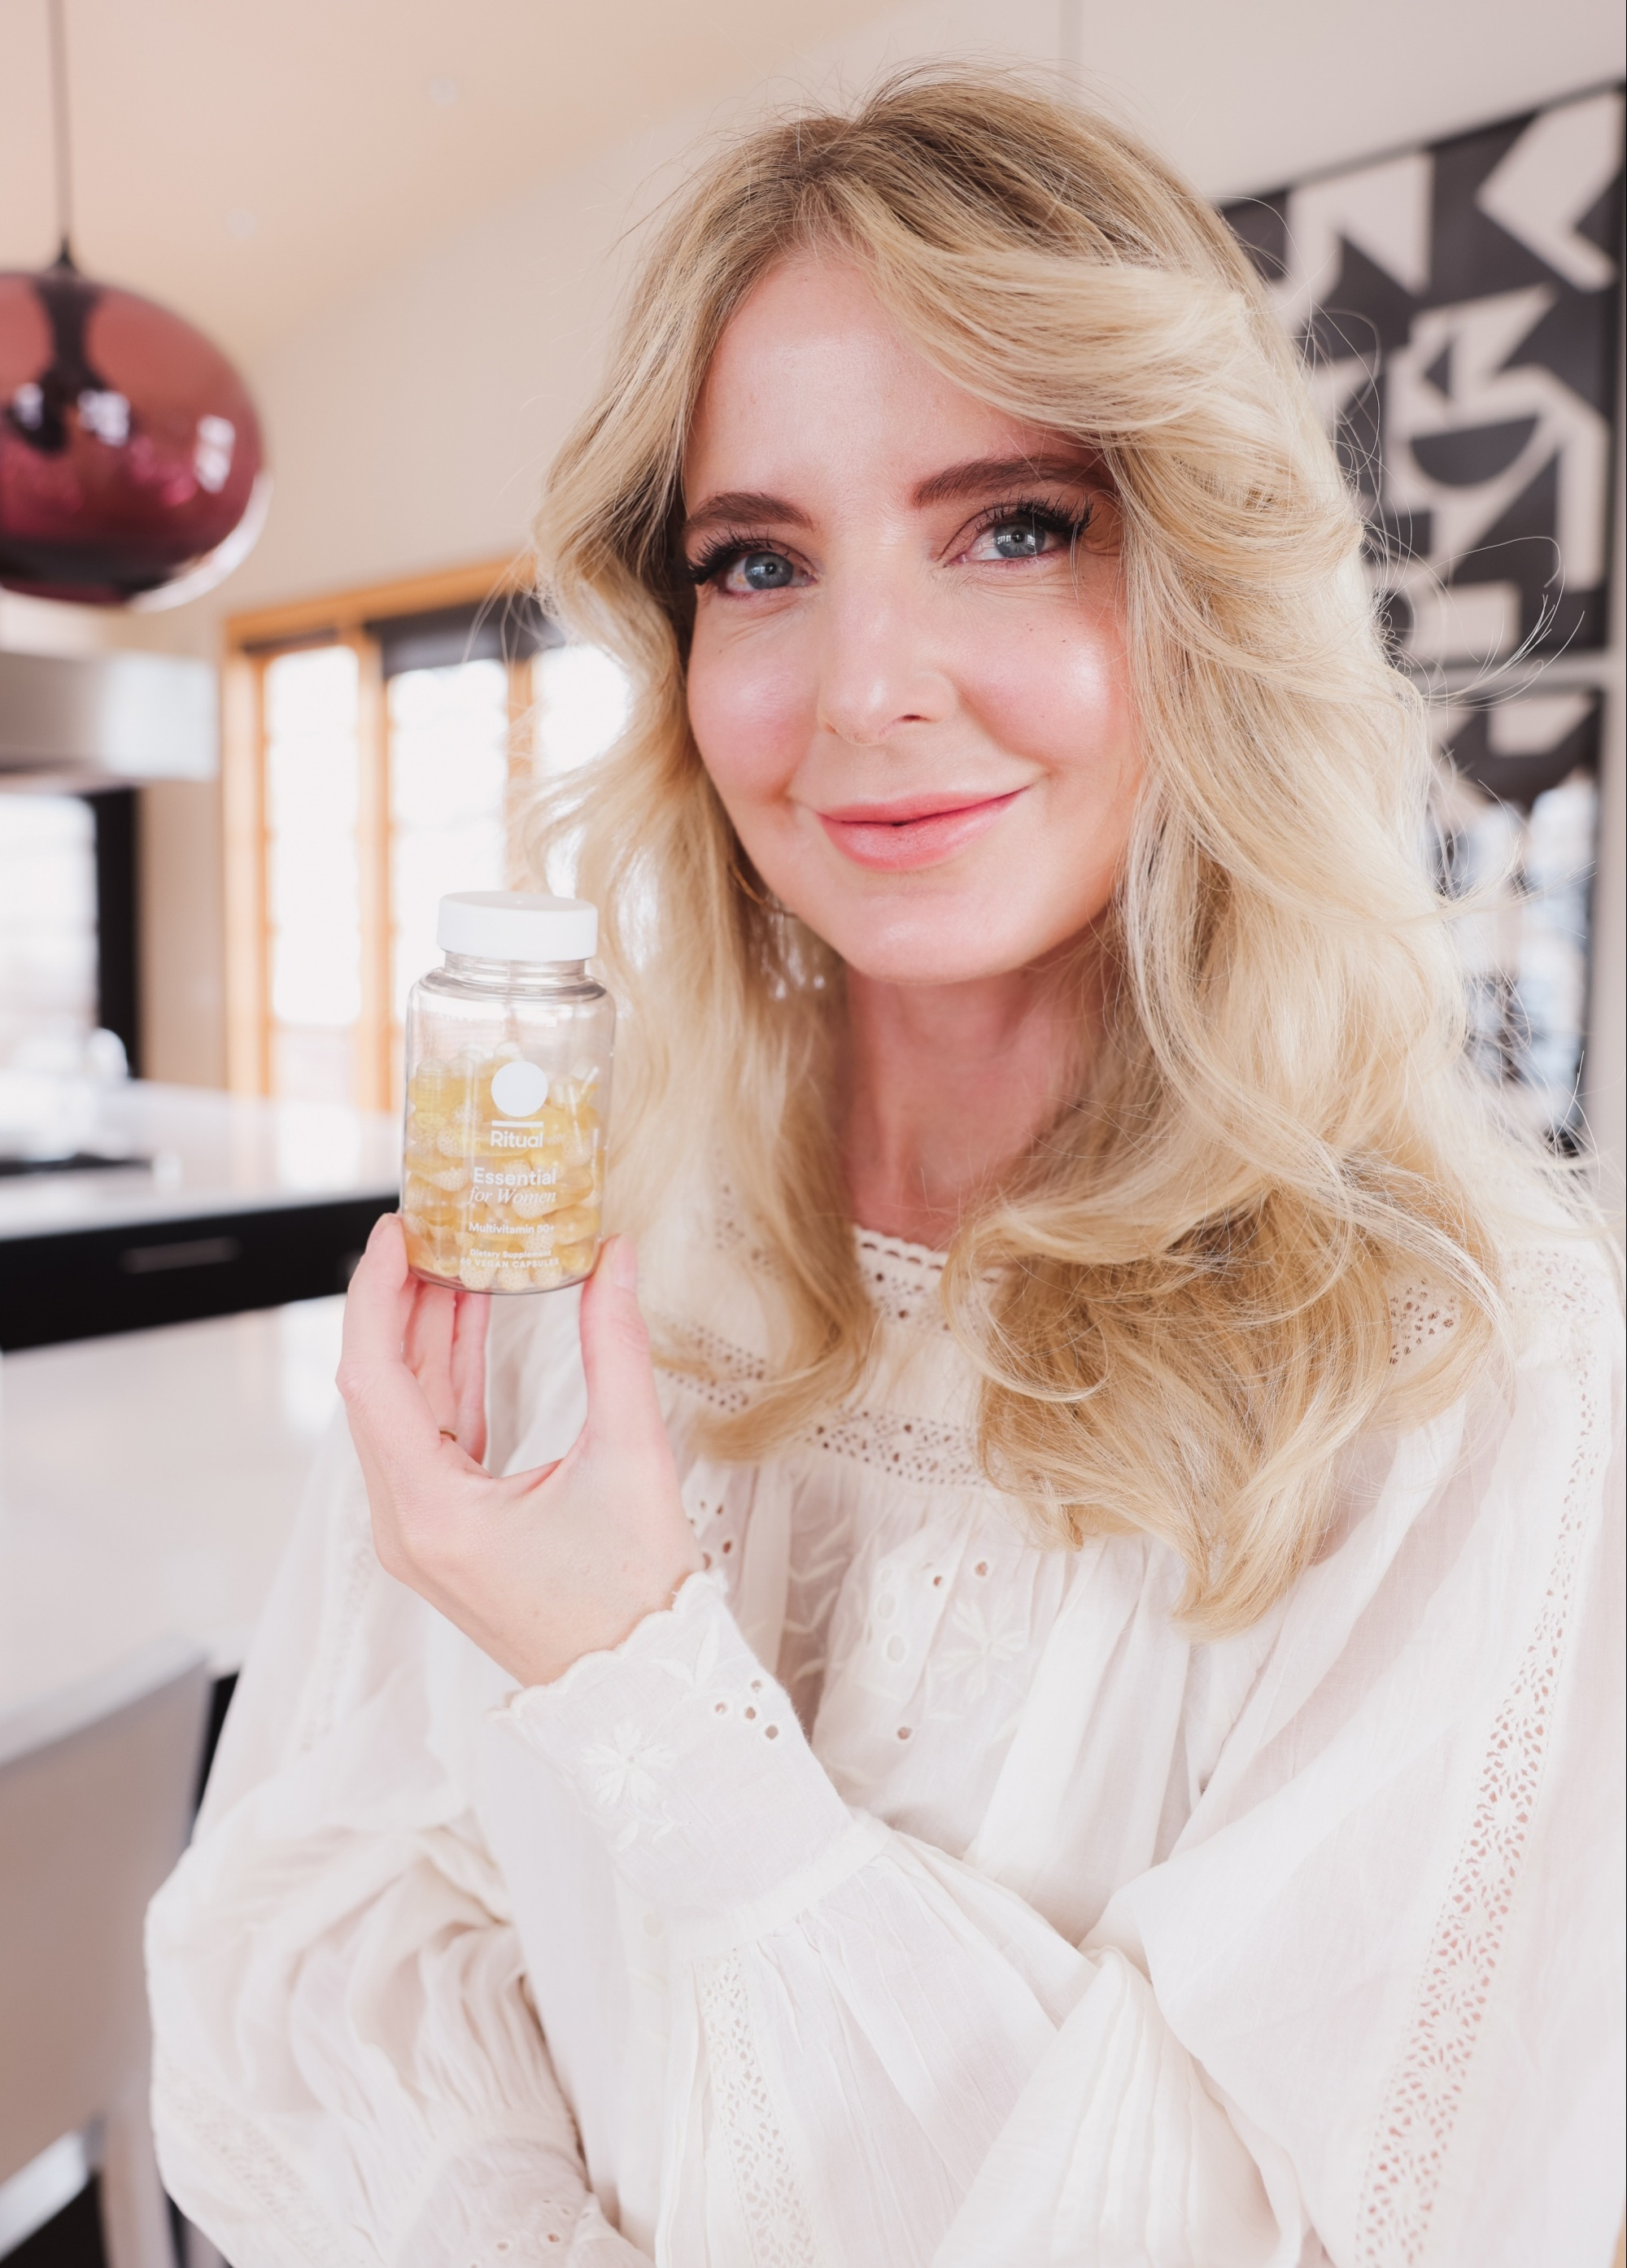 Everyday vitamins for women over 45 and women over 50 featuring Ritual vitamins and blogger over 40 Erin Busbee of Busbee style